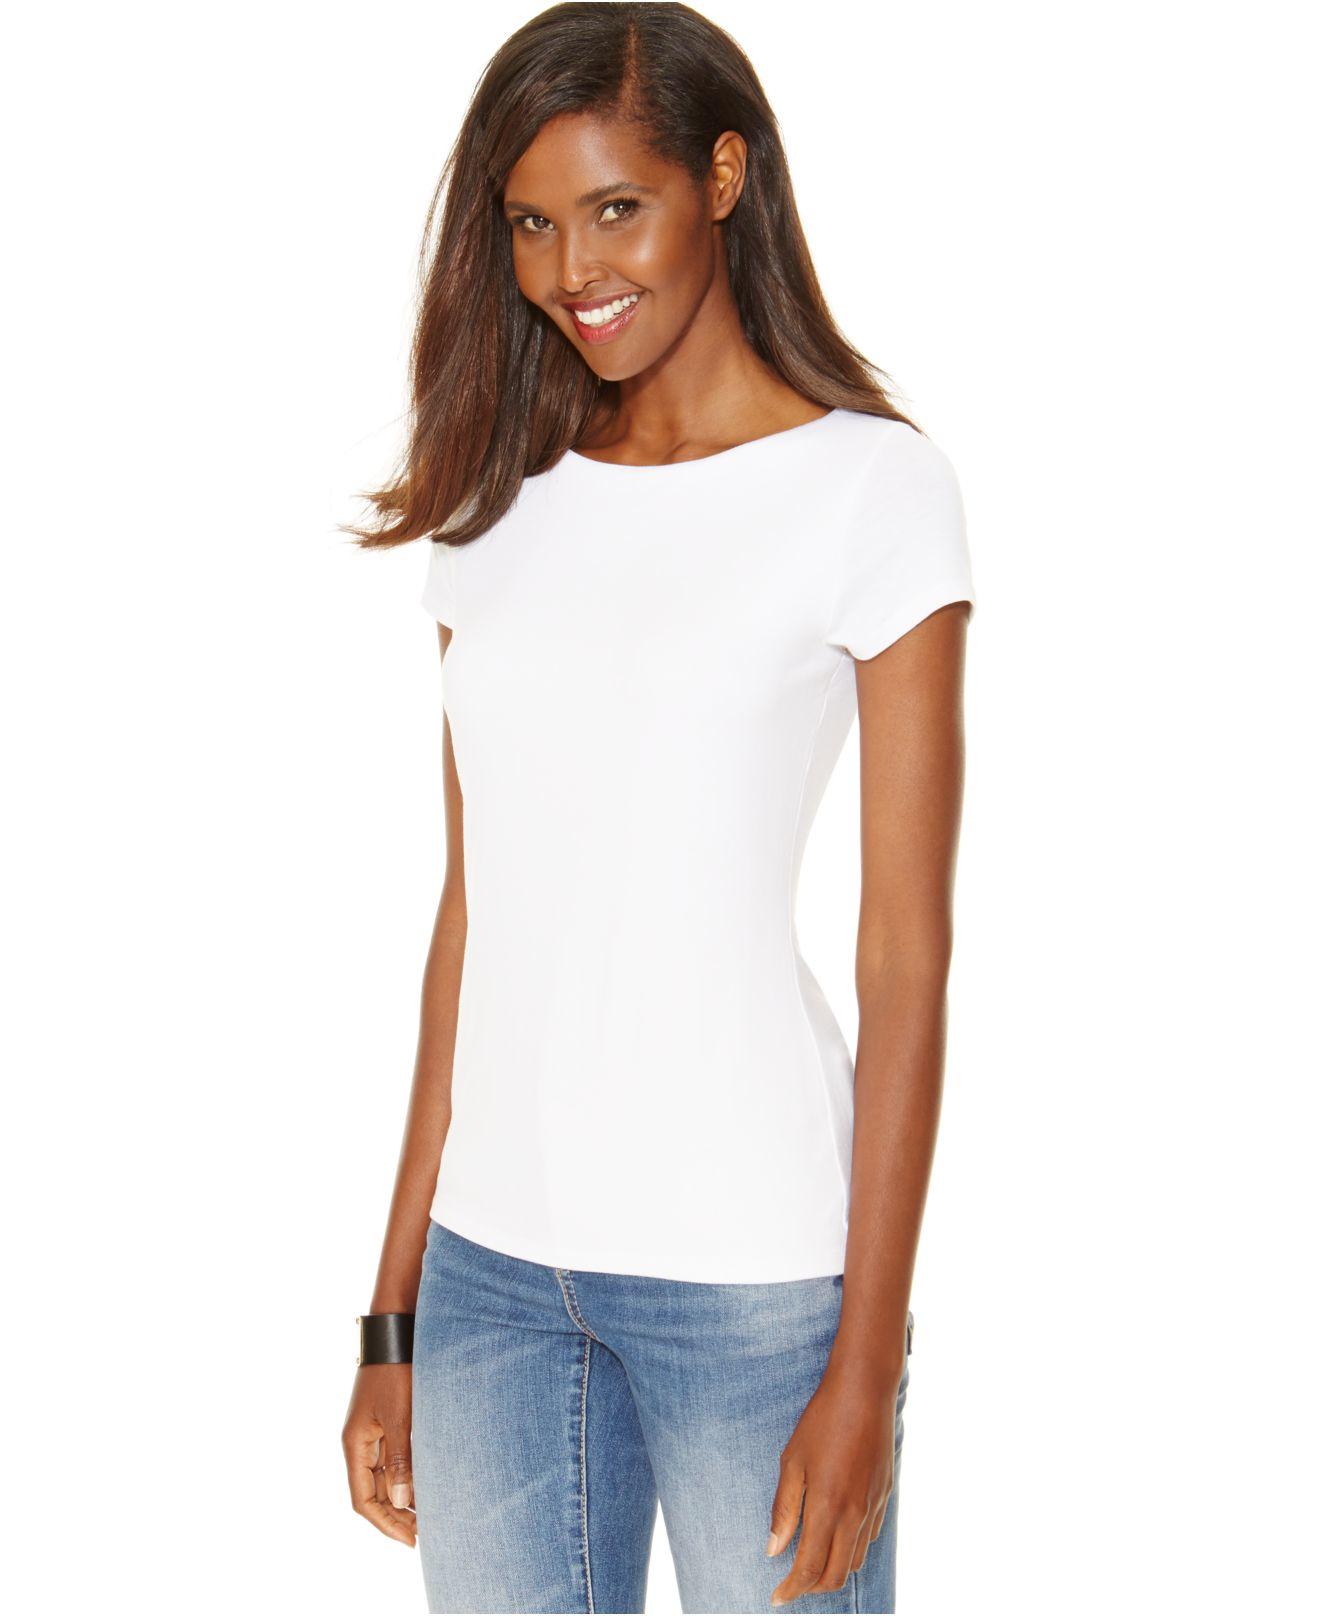 a27680403c5ef7 INC International Concepts Fitted Boat-neck Tee in White - Lyst